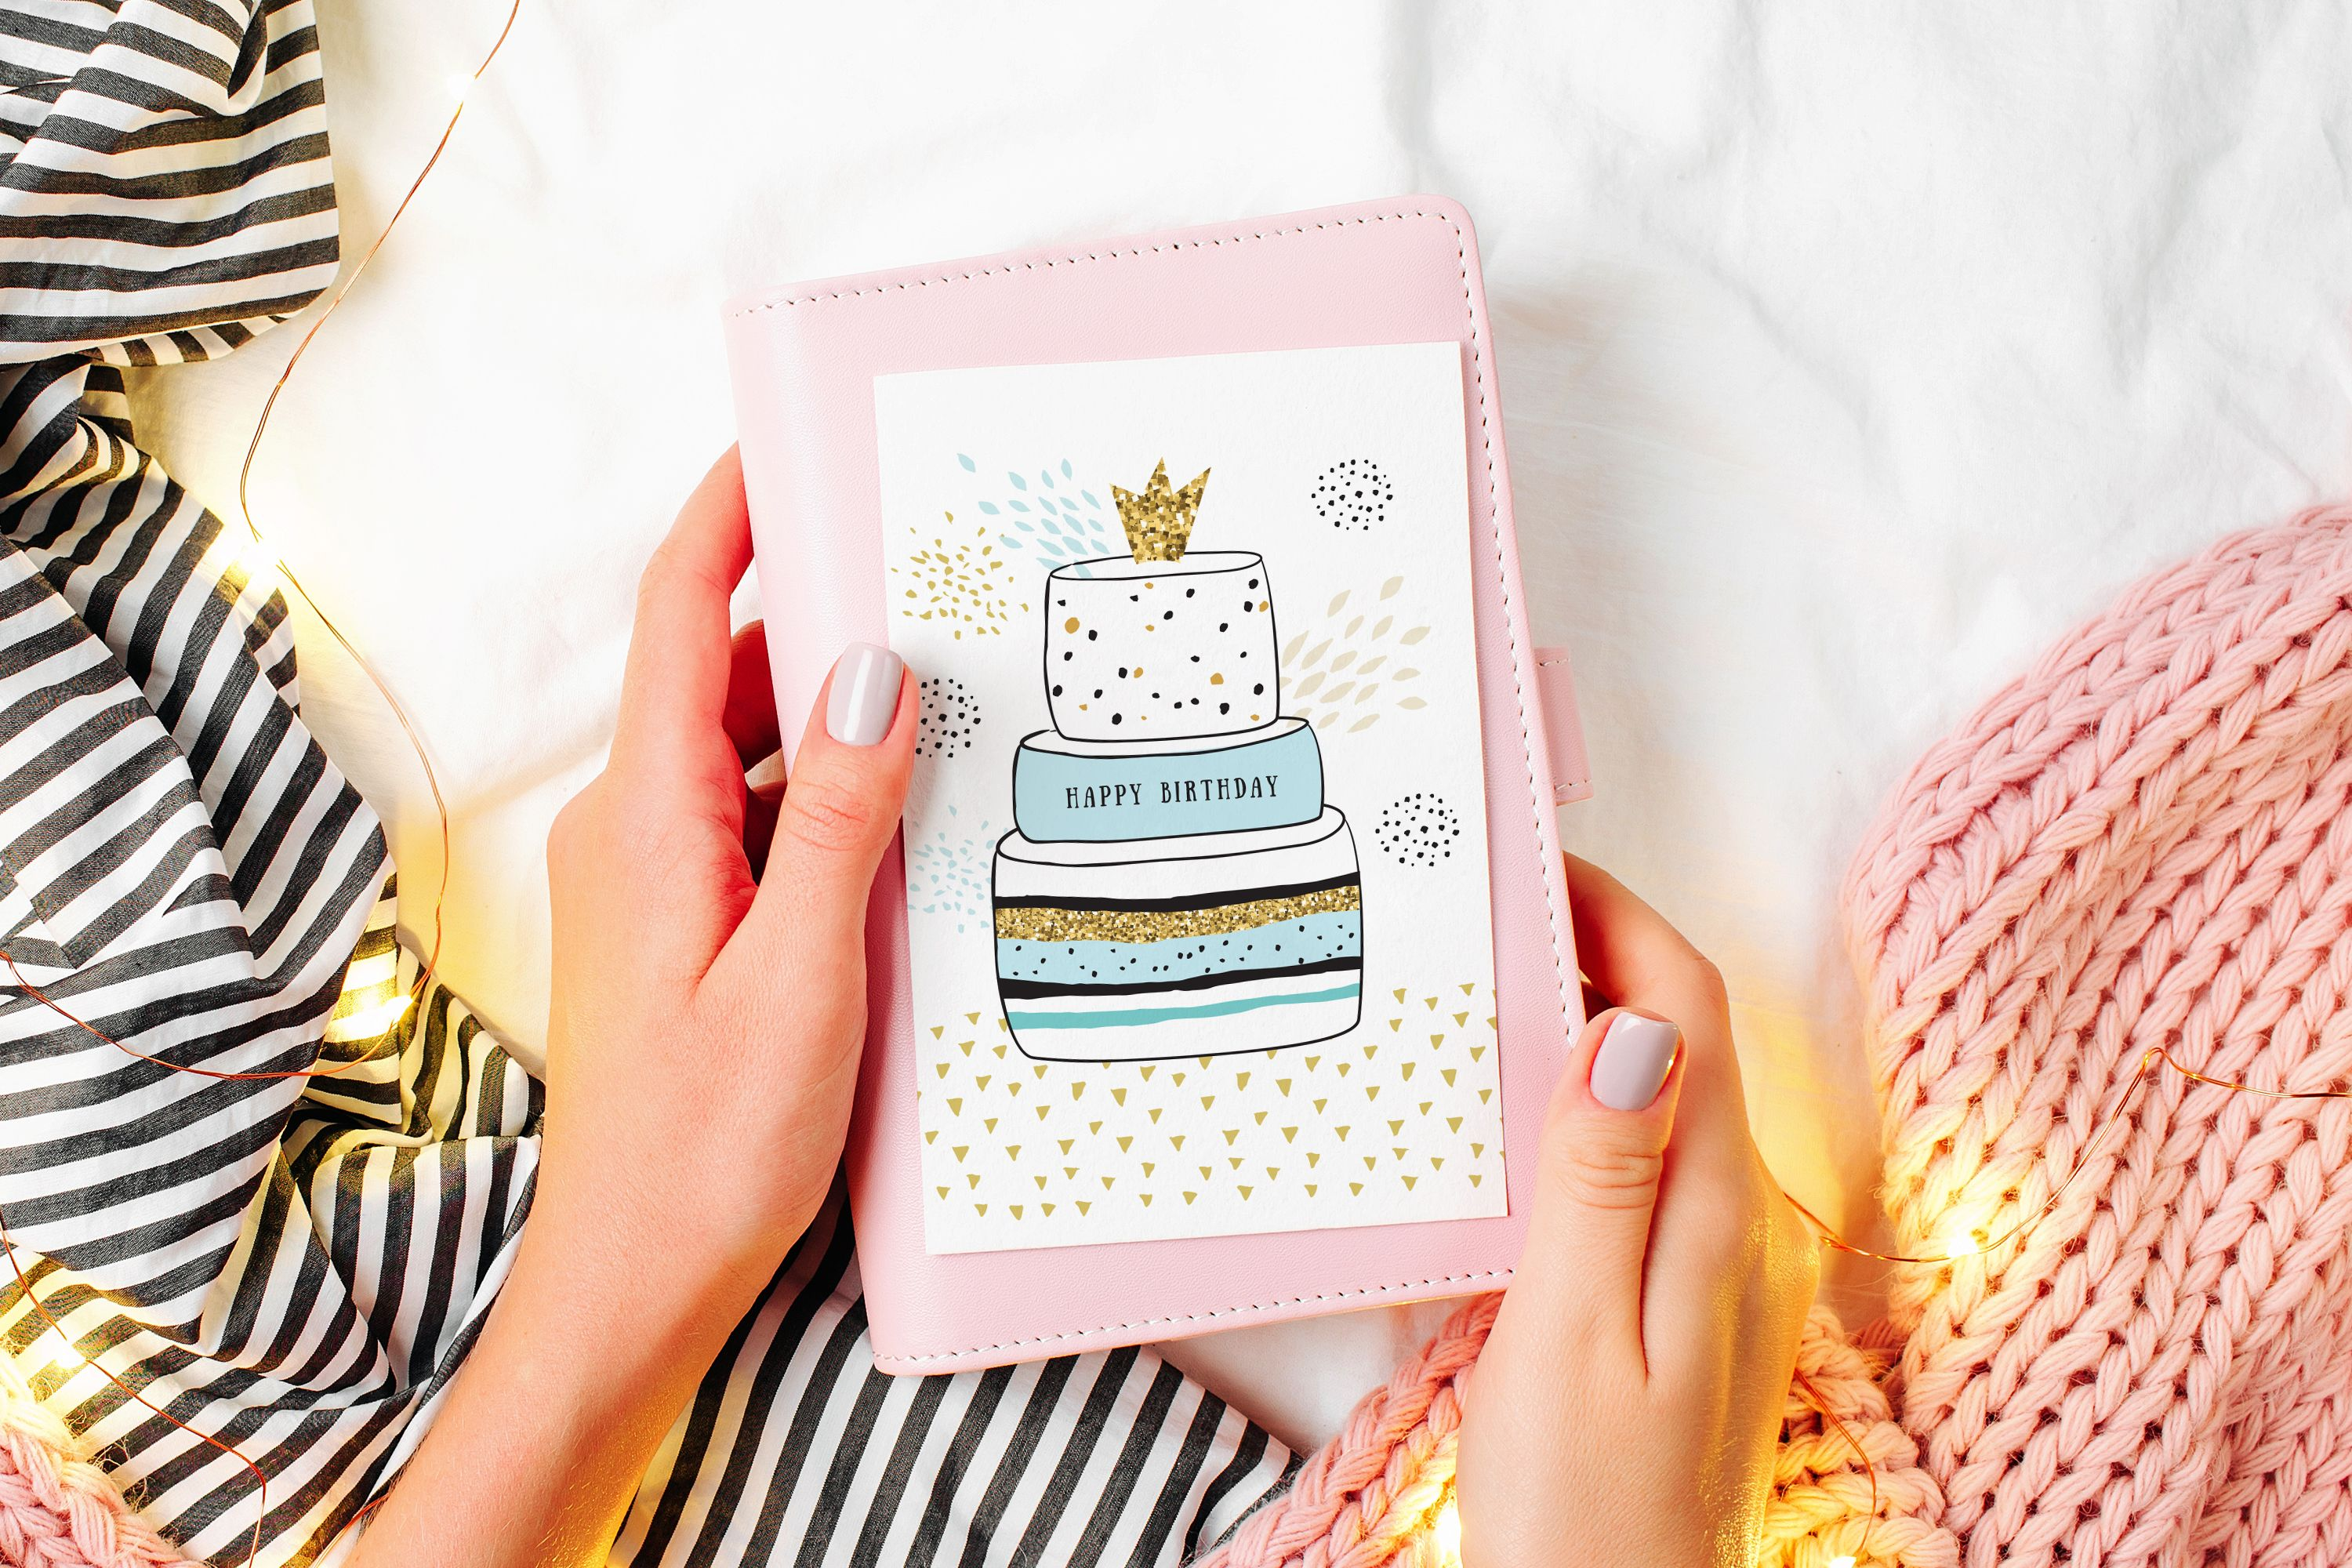 Superior Quality Happy Birthday Cards Our Large Happy Birthday Card Box Set Contains High Quality Birthday Cards For Men Birthday Cards Happy Birthday Cards